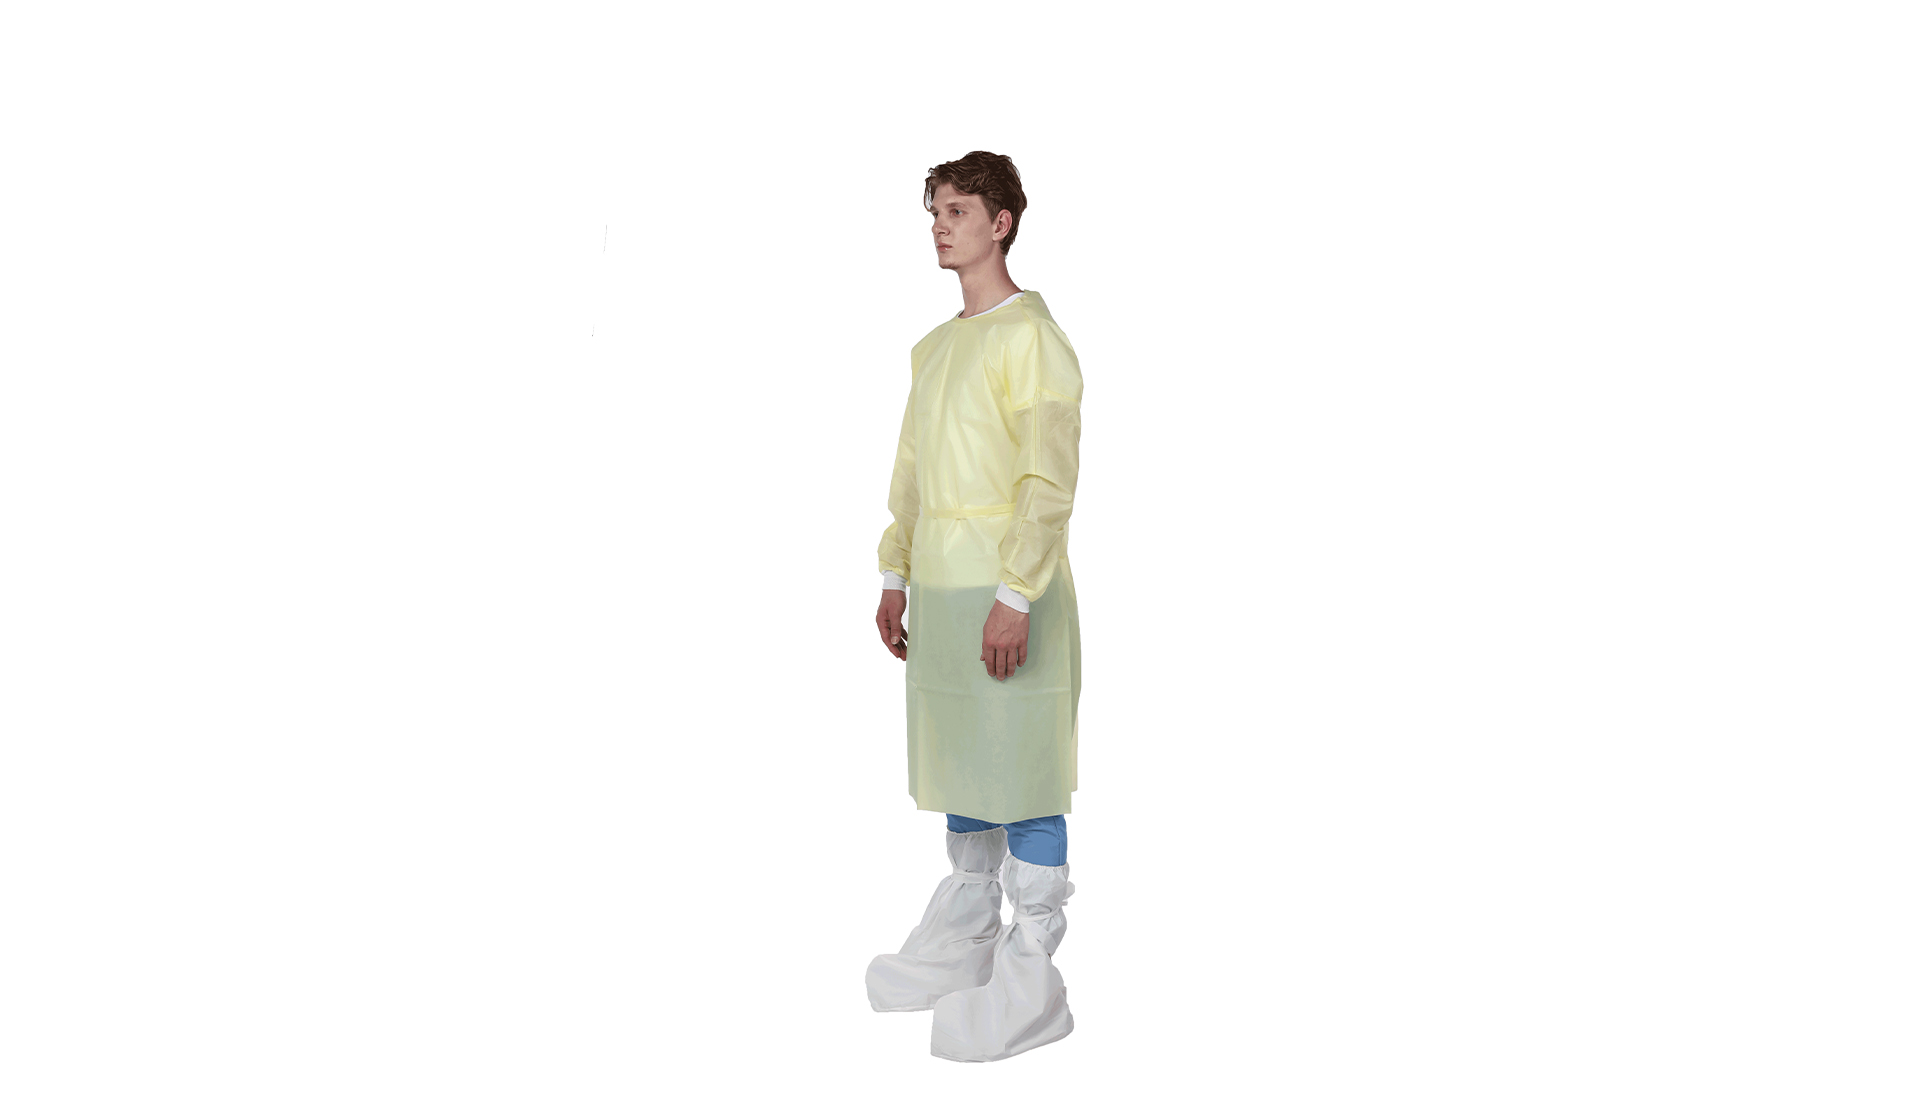 AAMI LEVE1 Isolation Gown